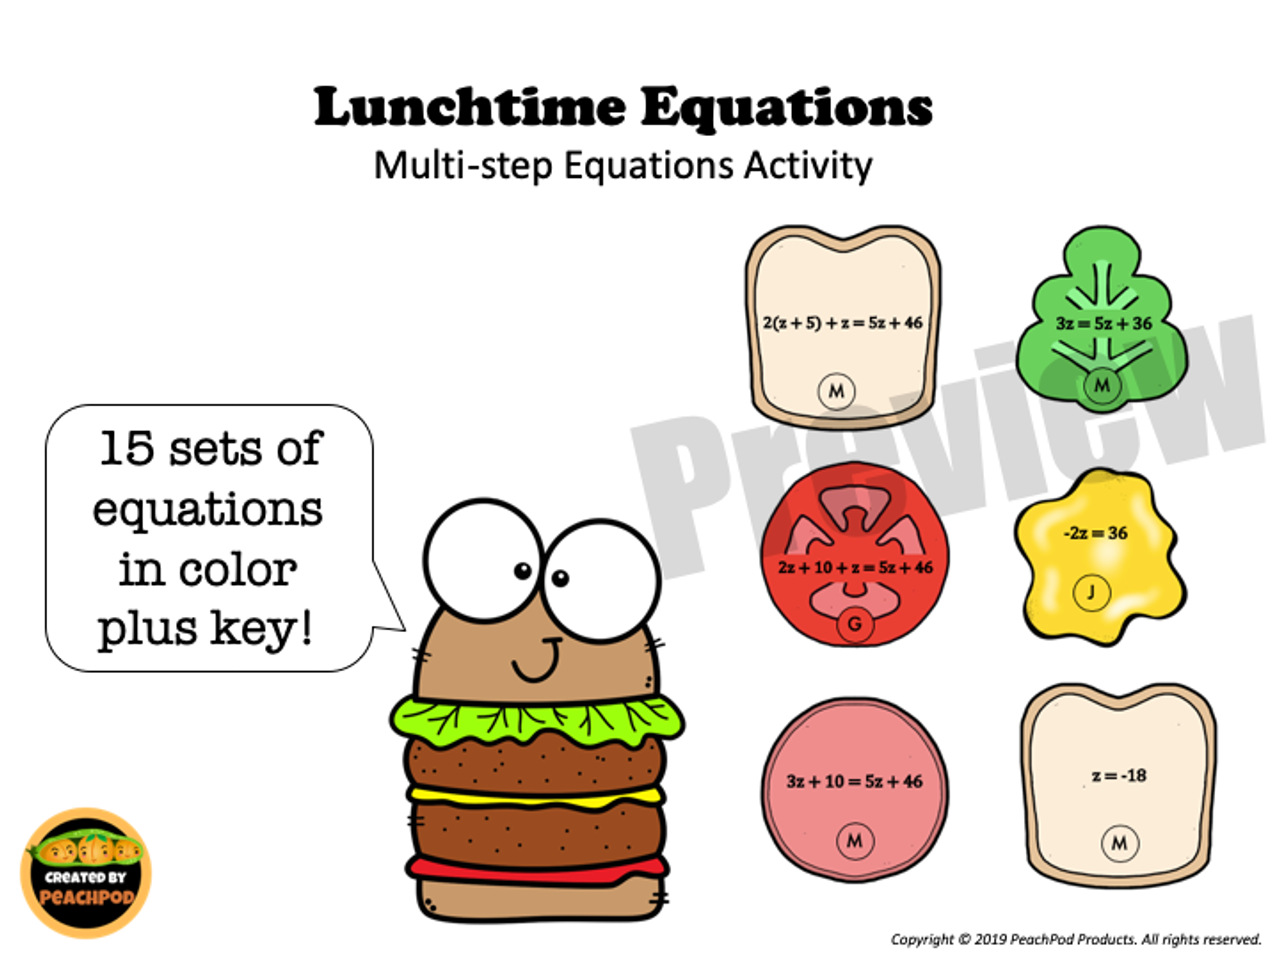 Holiday Party Walk Inequalities - Activity + Worksheet